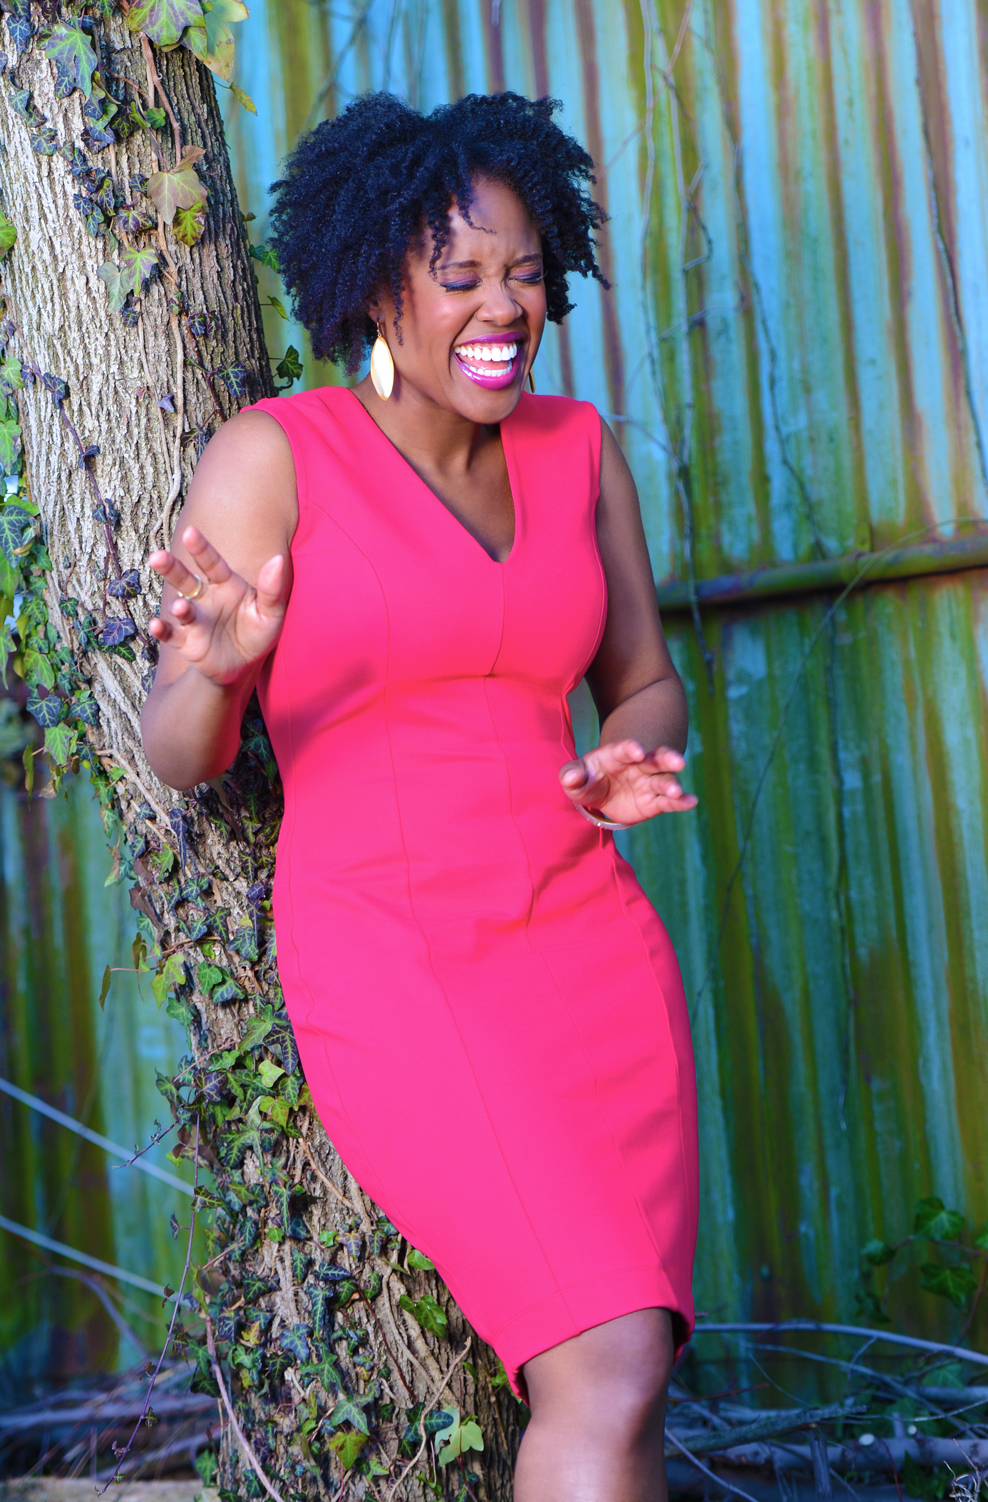 Akilah Green Laughing in Pink Dress